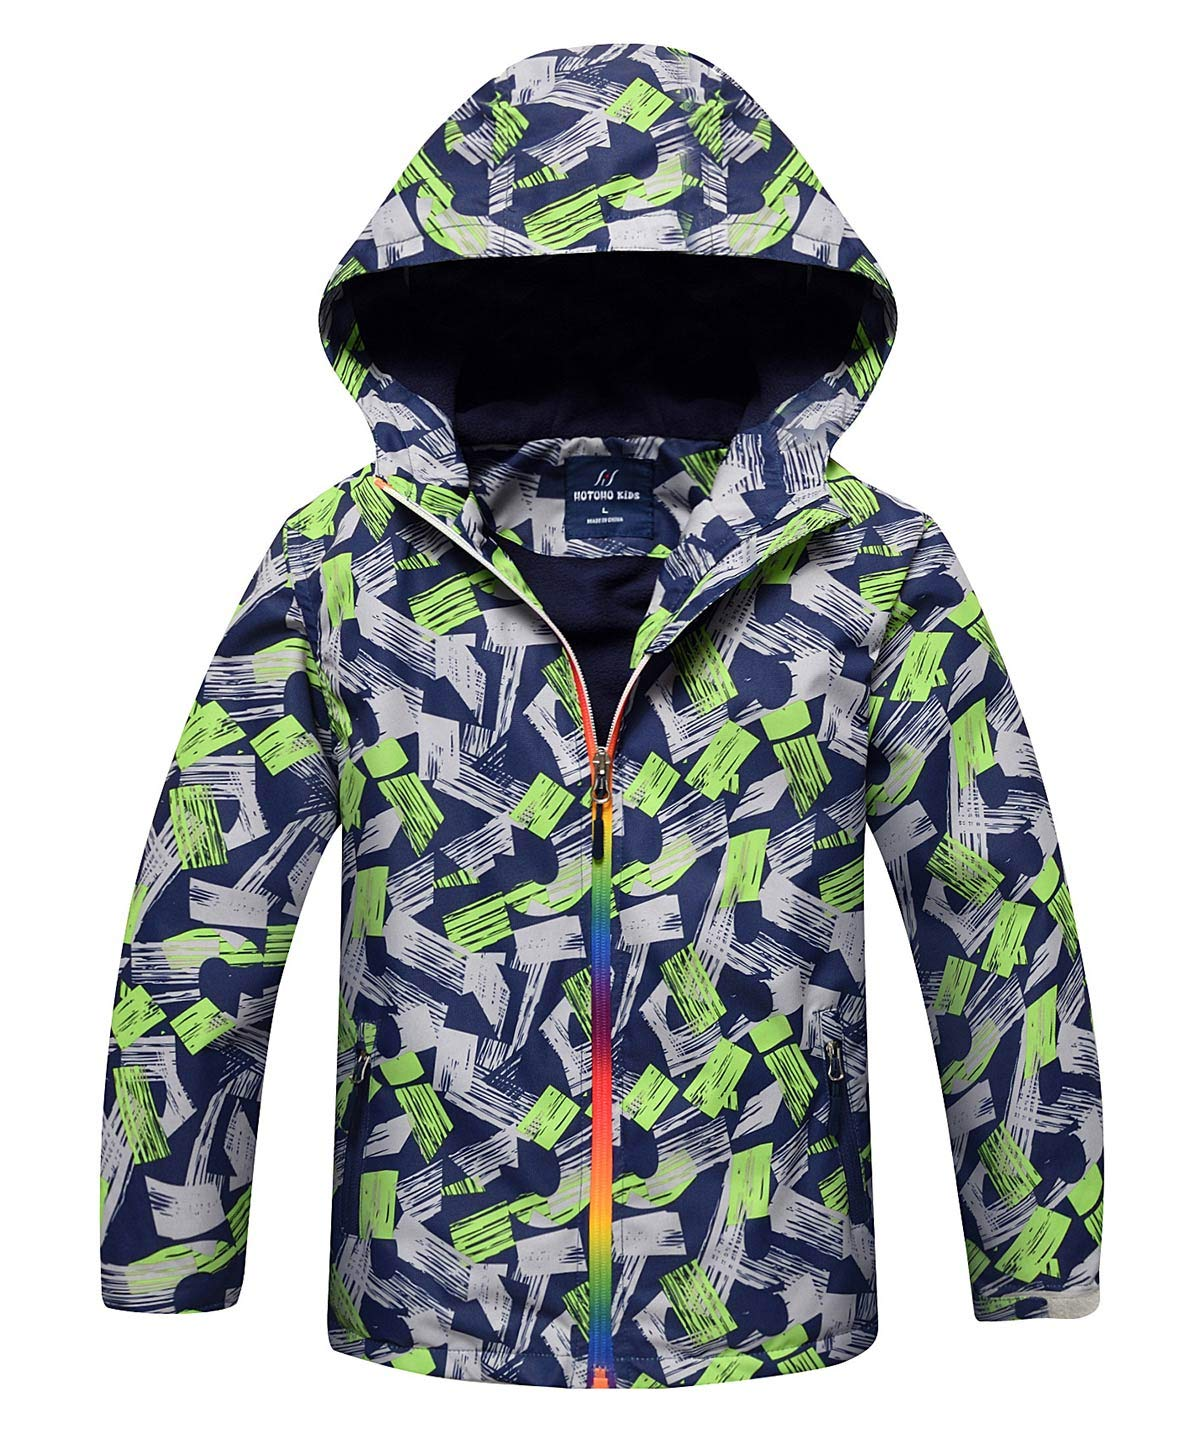 HUTUHU Latest Boys Fleece Hooded Jacket Warm Quilted Coat Outdoor Jacket - Gray S